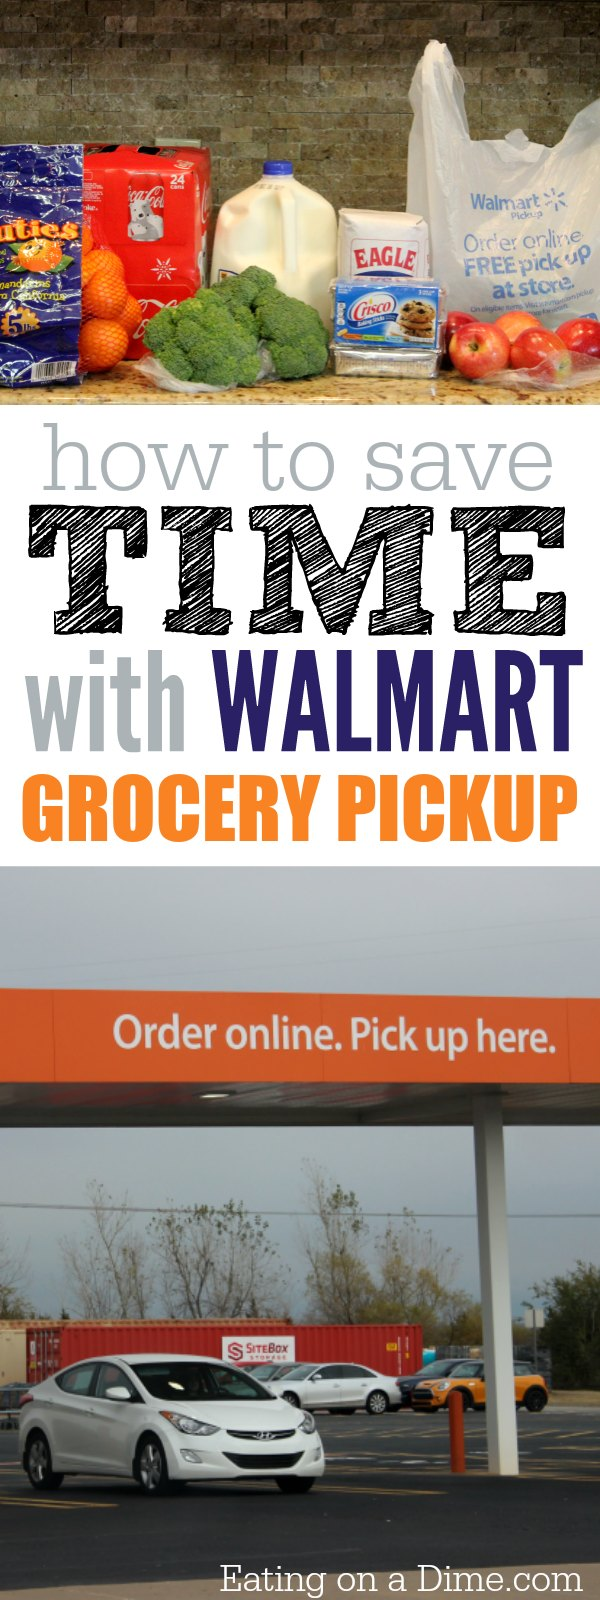 Walmart Moneygram Pick Up Forex Trading Wiring Money From Receiving How To Receive